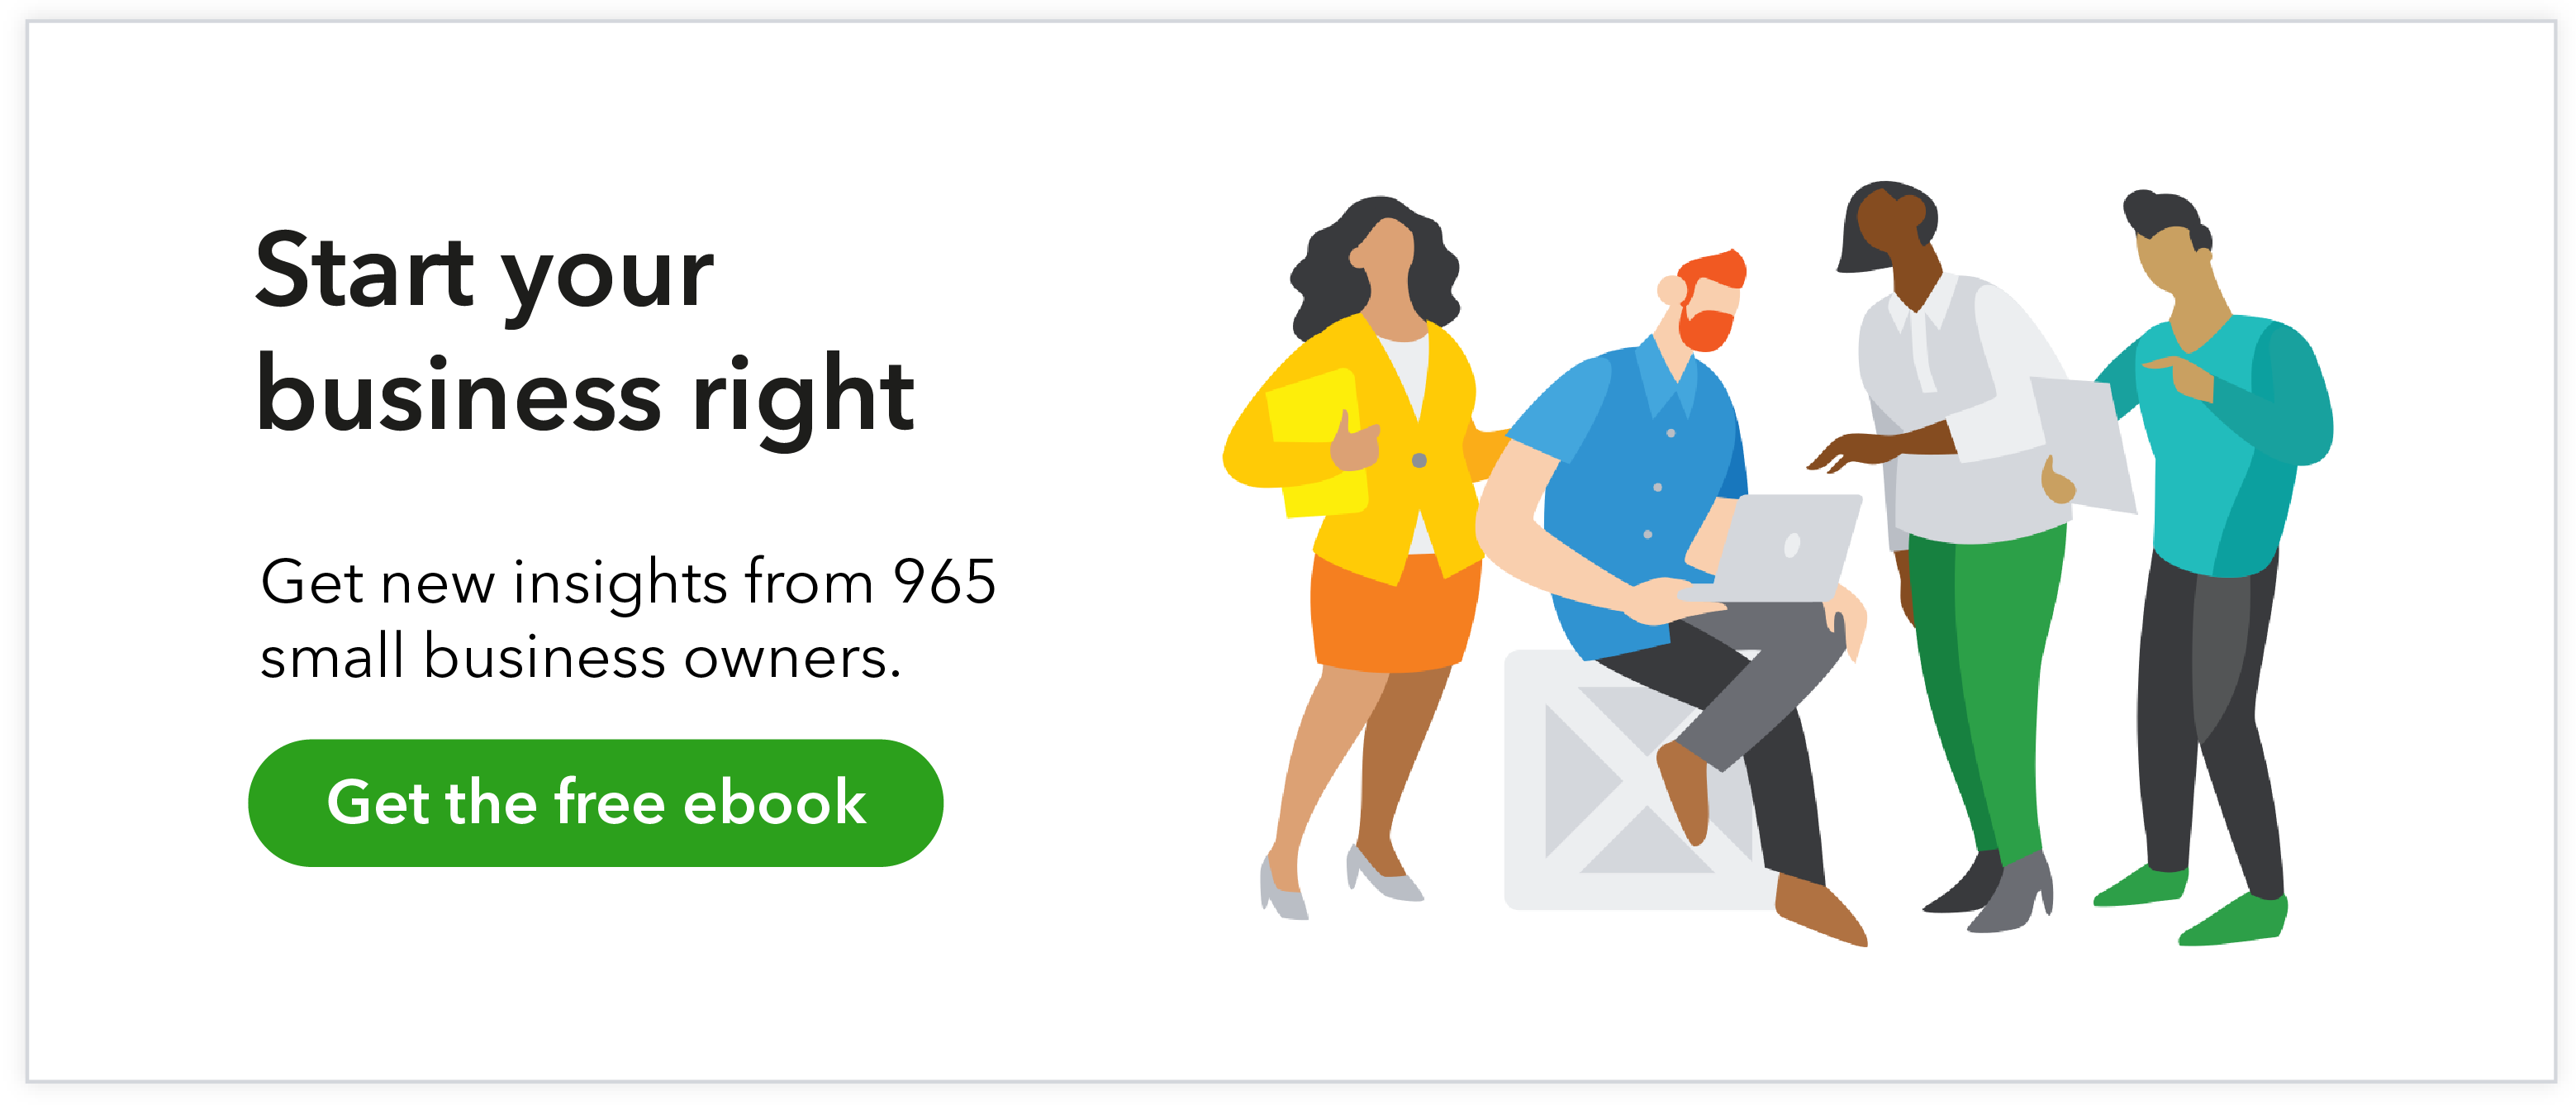 Start your business right. Get new insights from 965 small business owners. Get the free ebook.